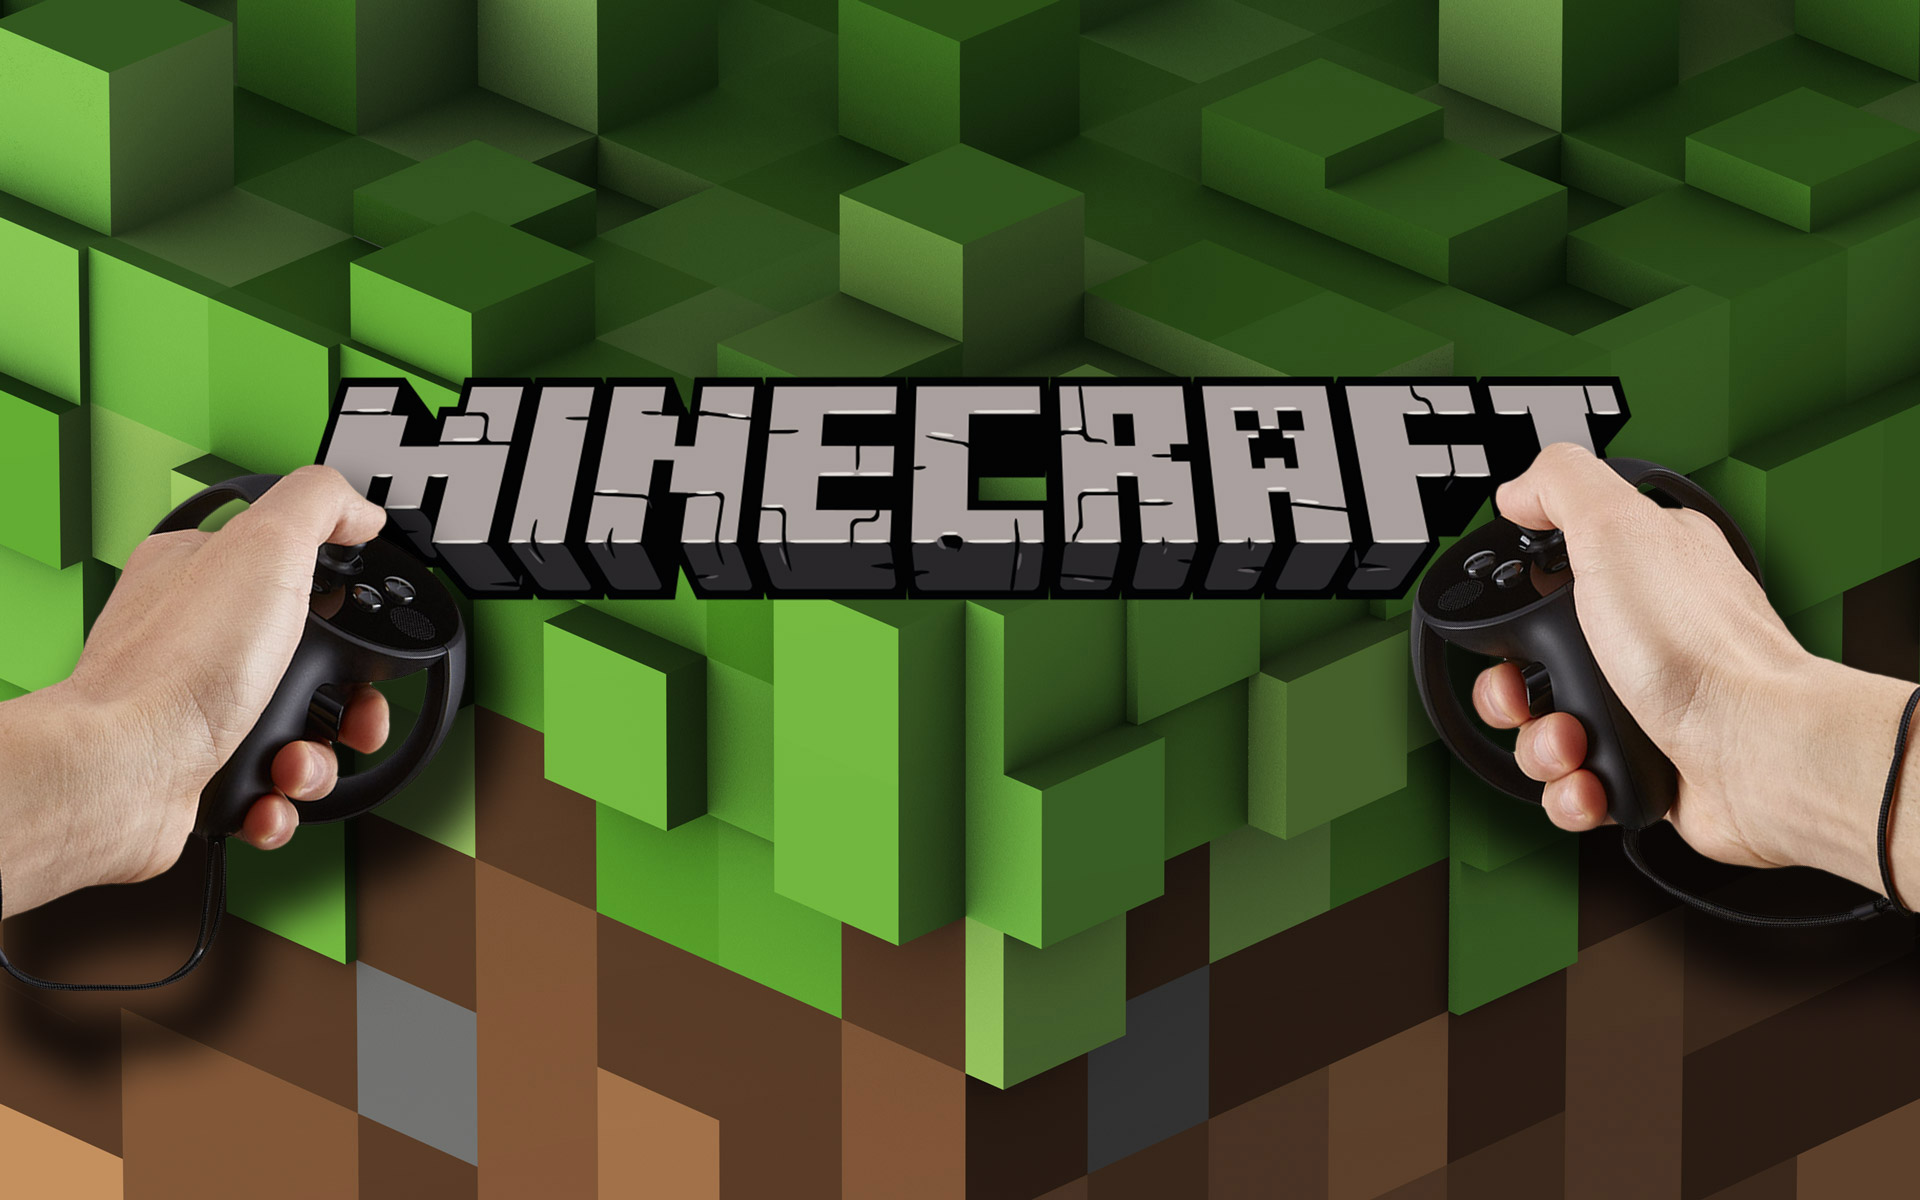 Minecraft for Oculus Rift Next Week, Touch Support Later in 12